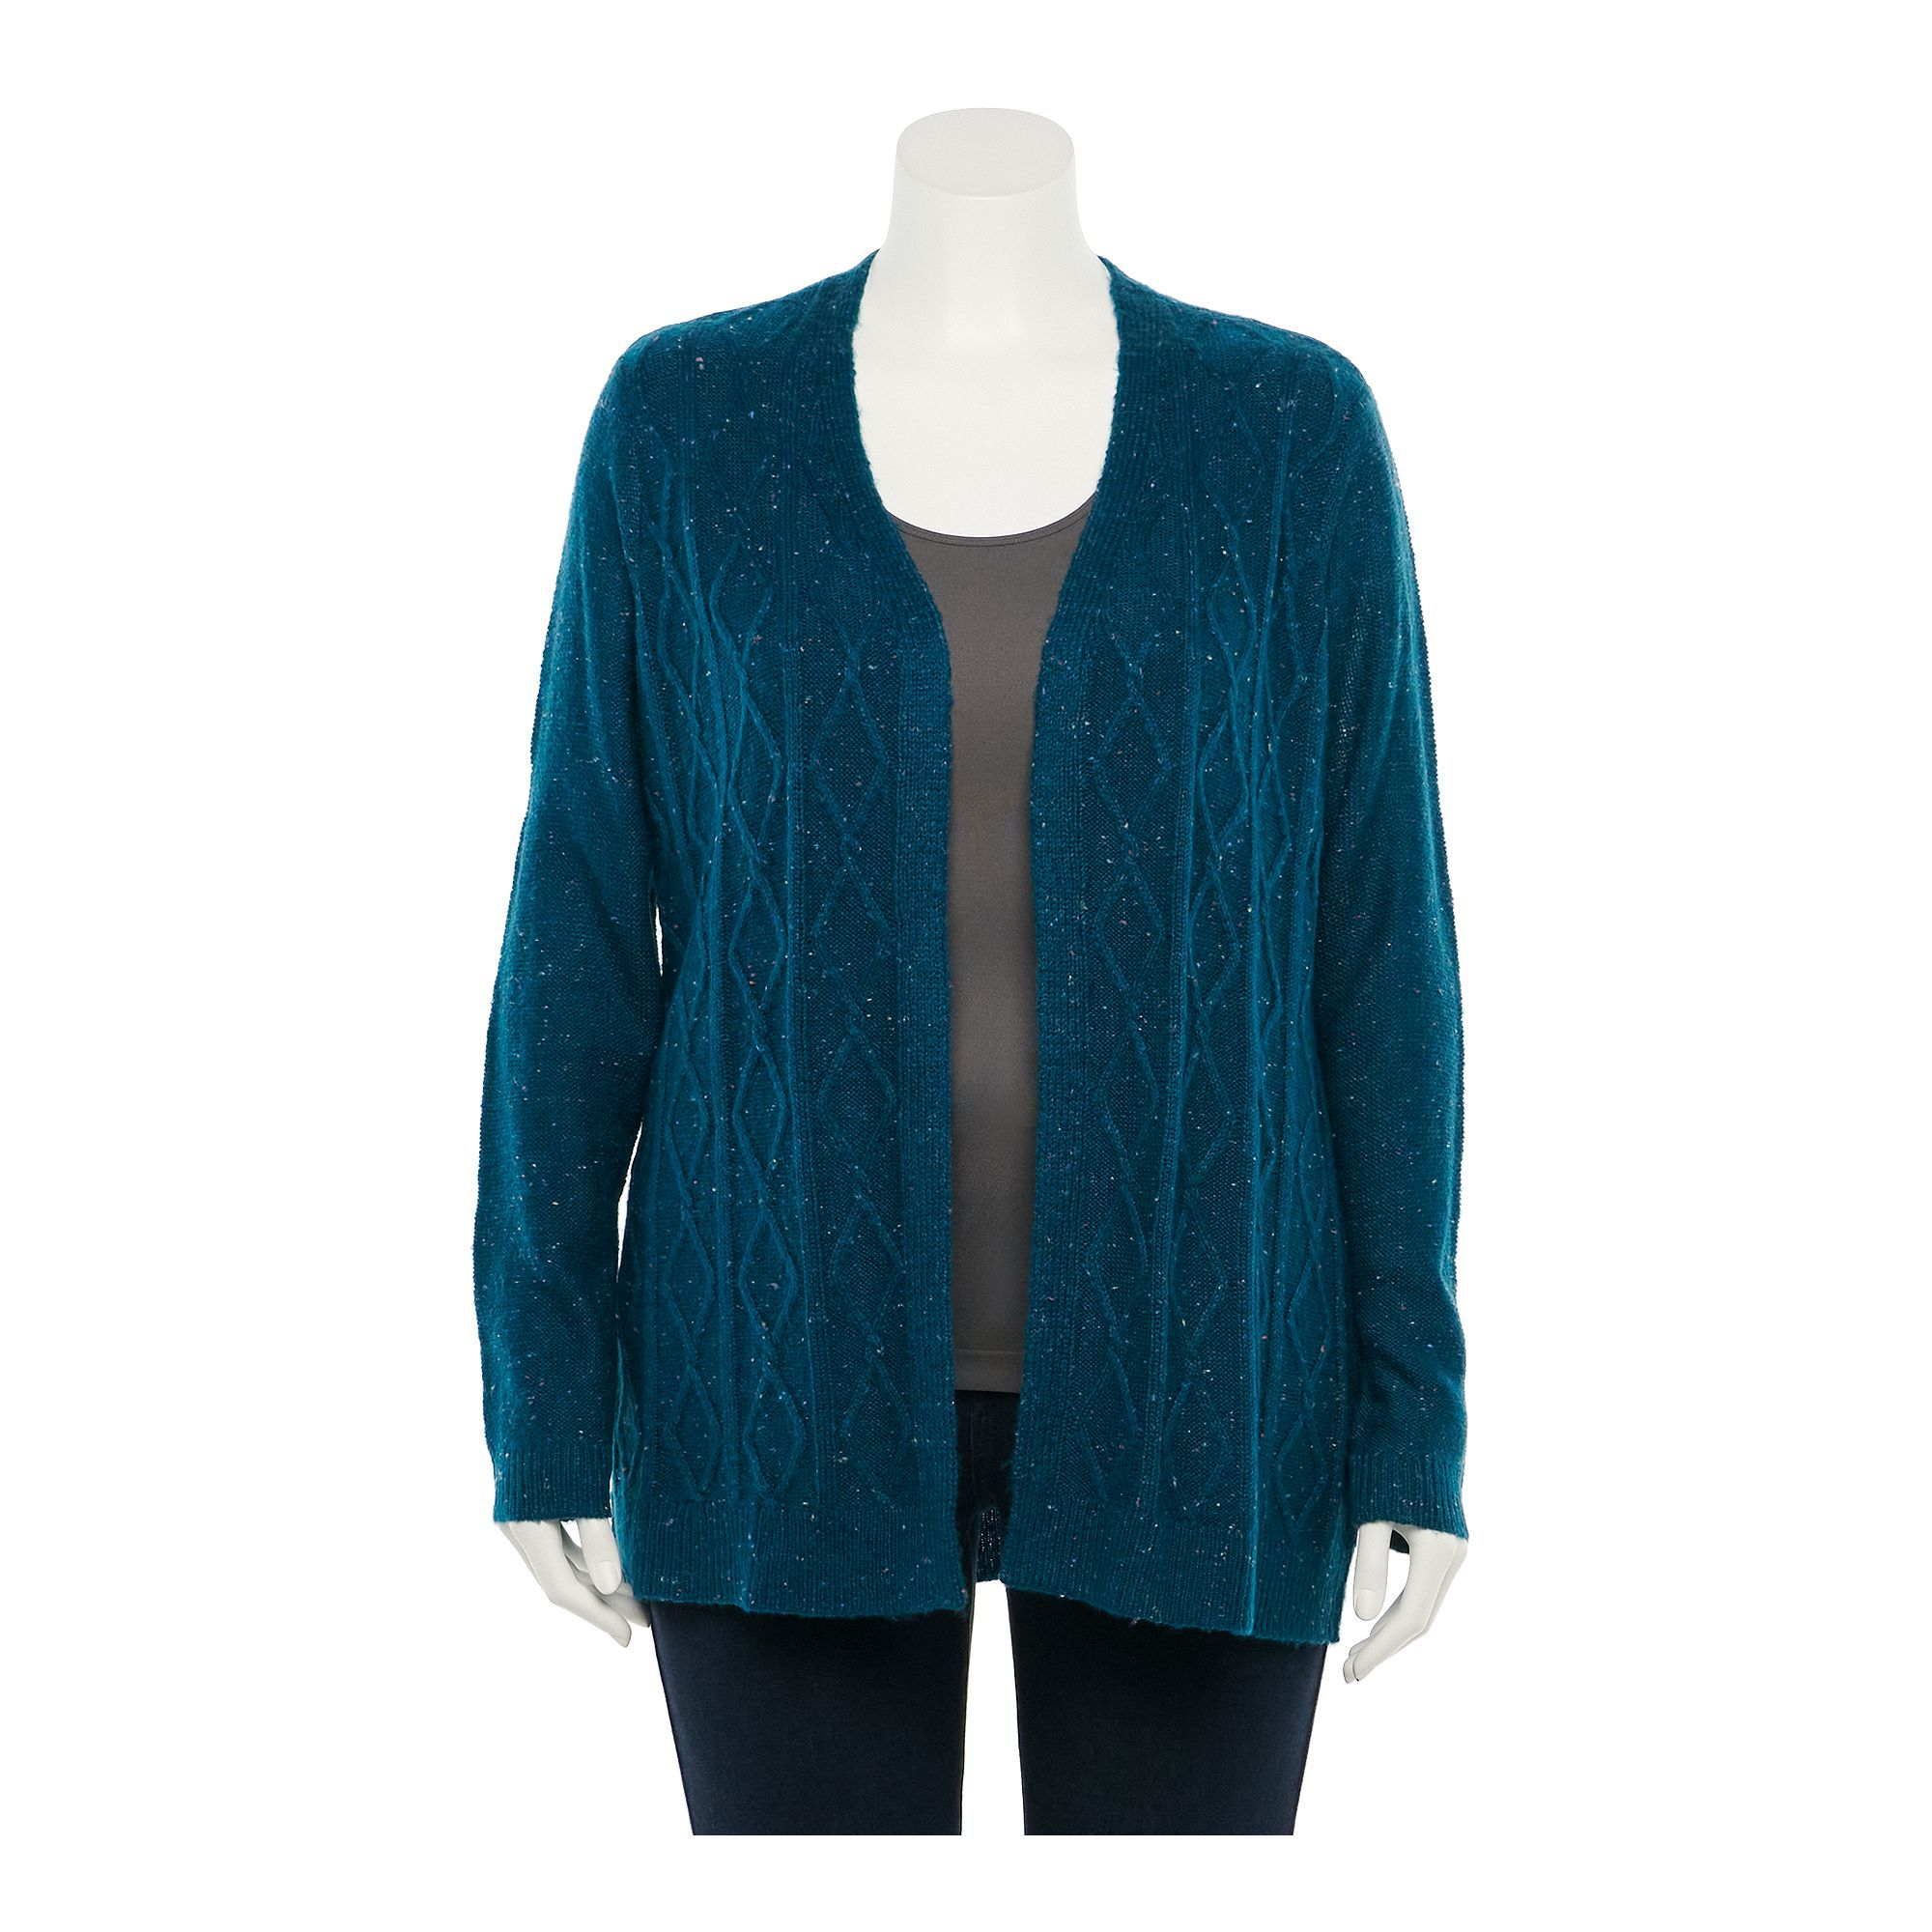 Plus Size Napa Valley Nep Cable-Knit Cardigan, Women's, Size: 3XL, Blue